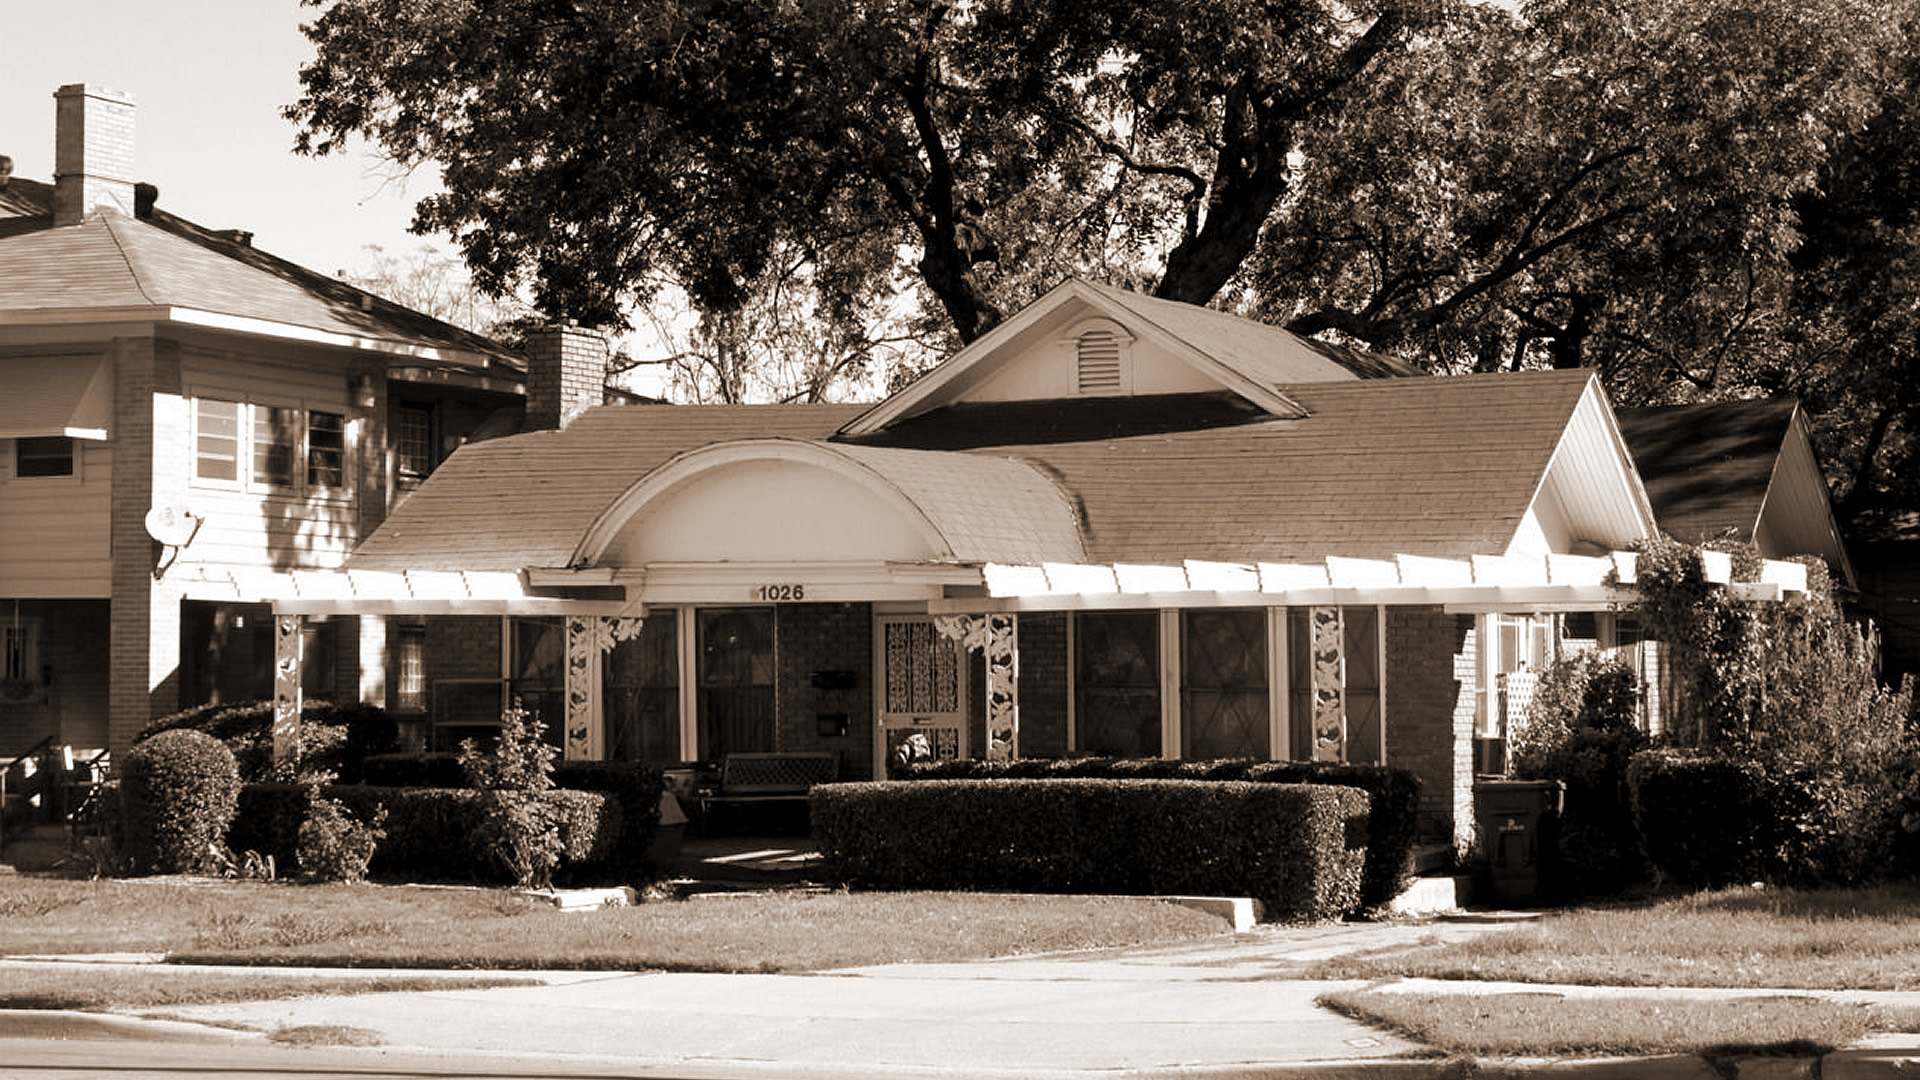 The house at 1026 N. Beckley Street in the Oak Cliff section of Dallas, Texas was the temporary residence of Lee Harvey Oswald at the time of the assassination of United States President John F. Kennedy. Oswald rented a room at this house for $8 a week, beginning October 14, 1963, under the name O.H. Lee.